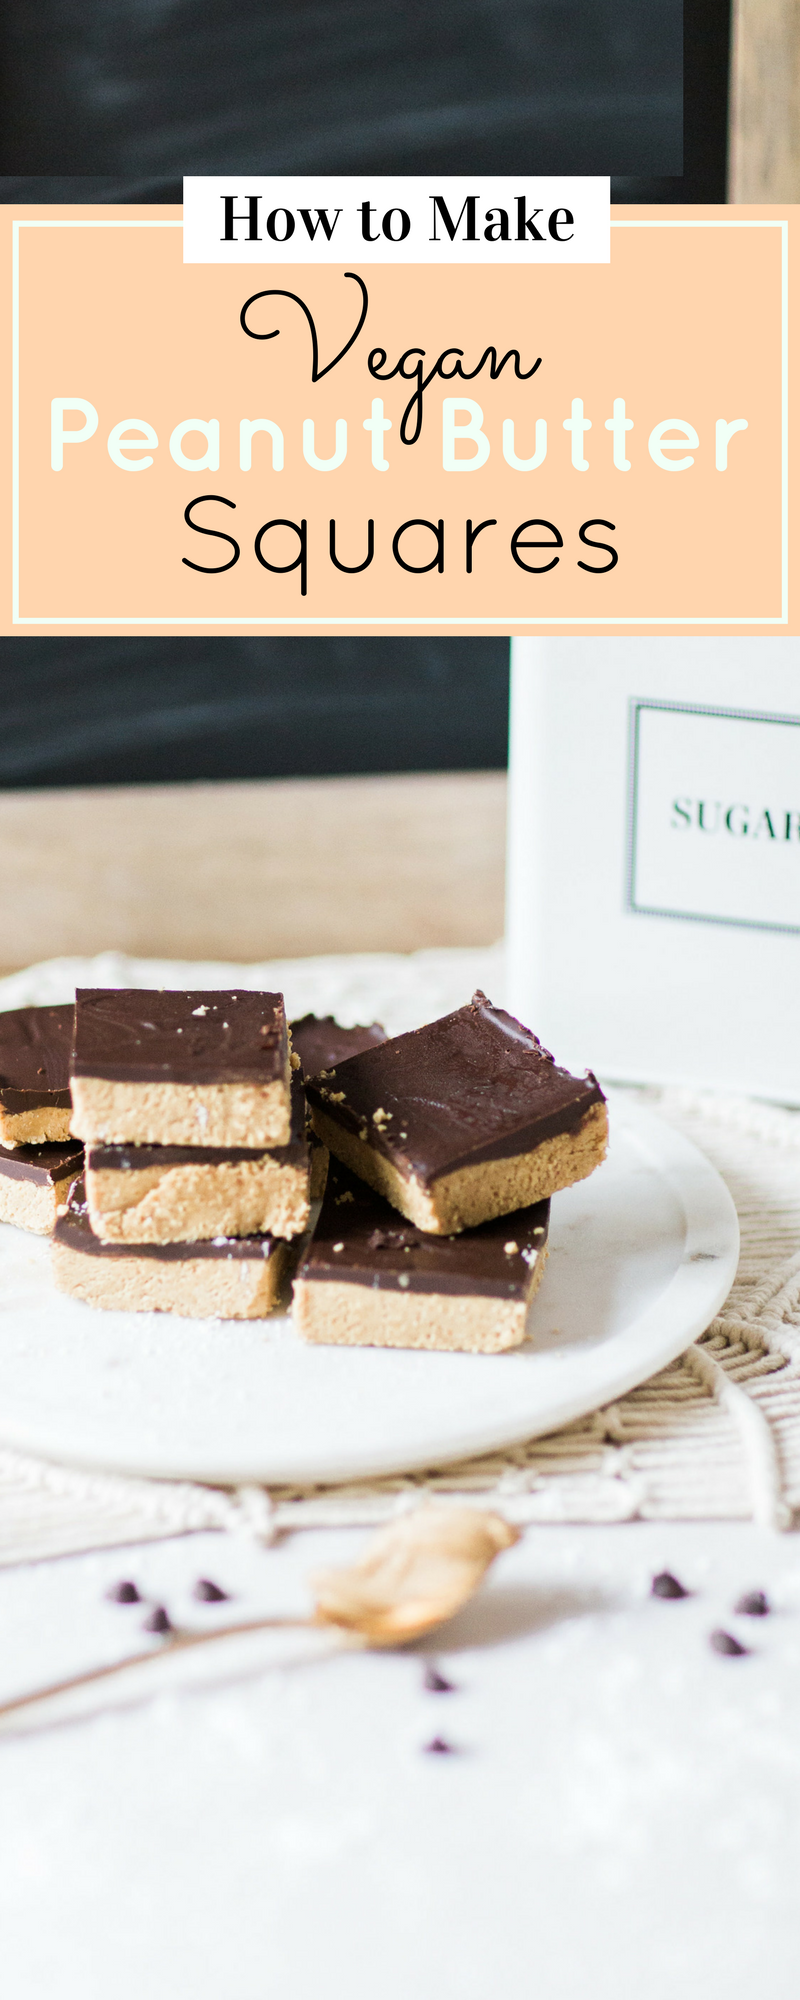 How to make vegan and dairy-free classic peanut butter chocolate squares. You will fall in love with this throwback dessert all over again! Click through for the recipe. | glitterinc.com | @glitterinc